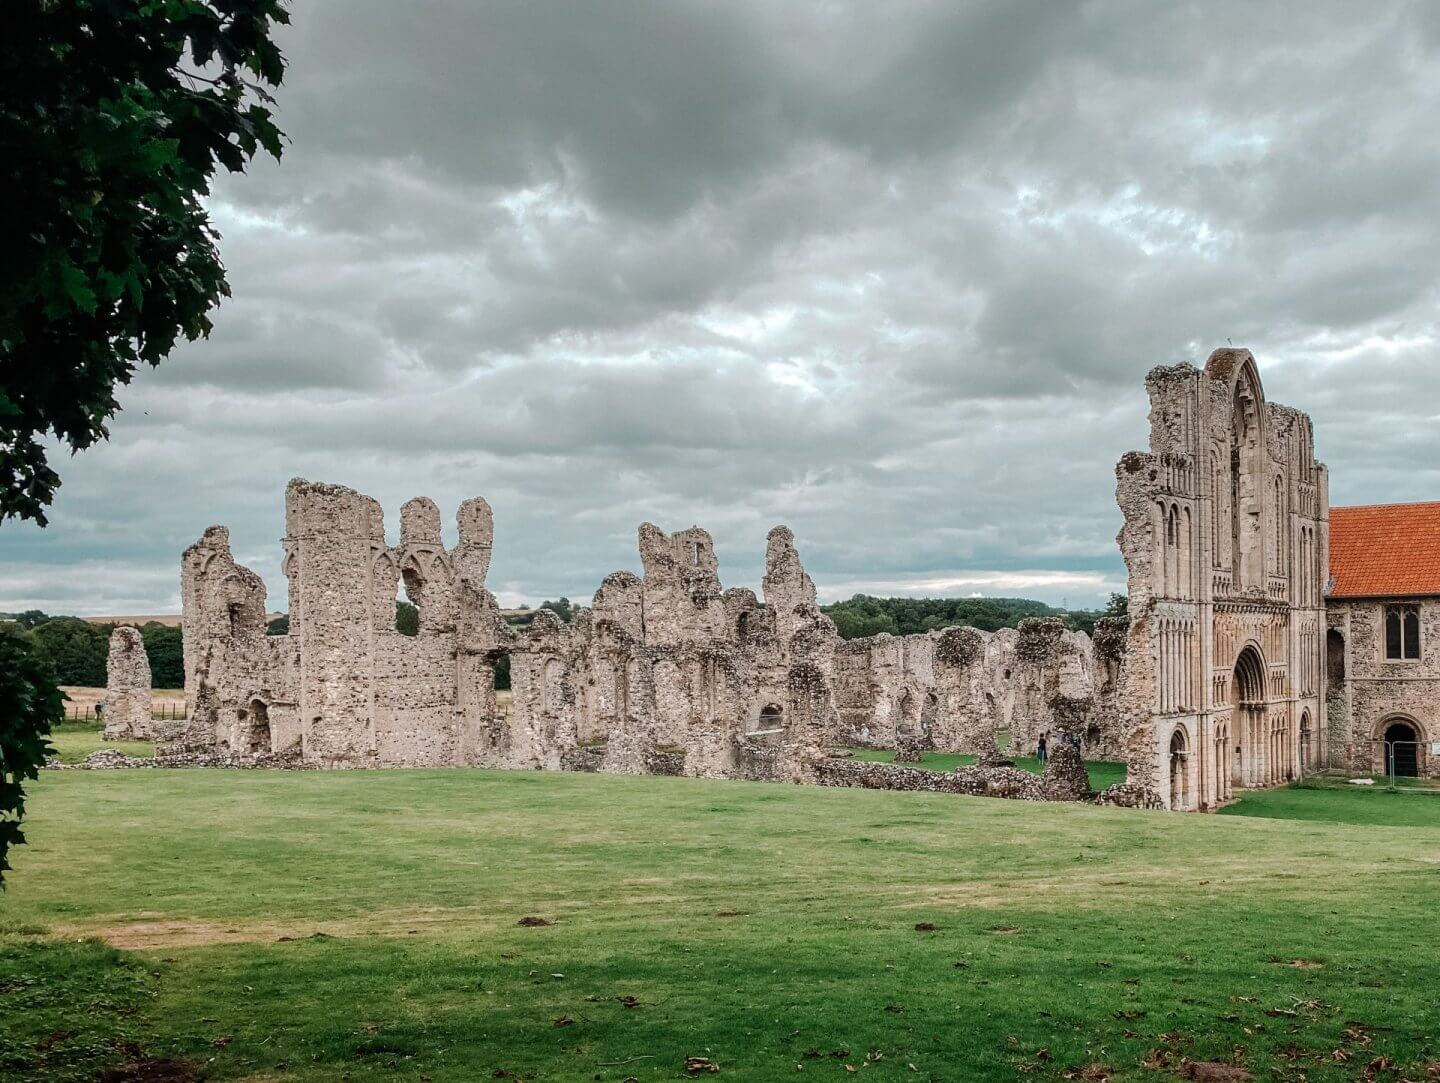 Image of Castle Acre Priory in Norfolk